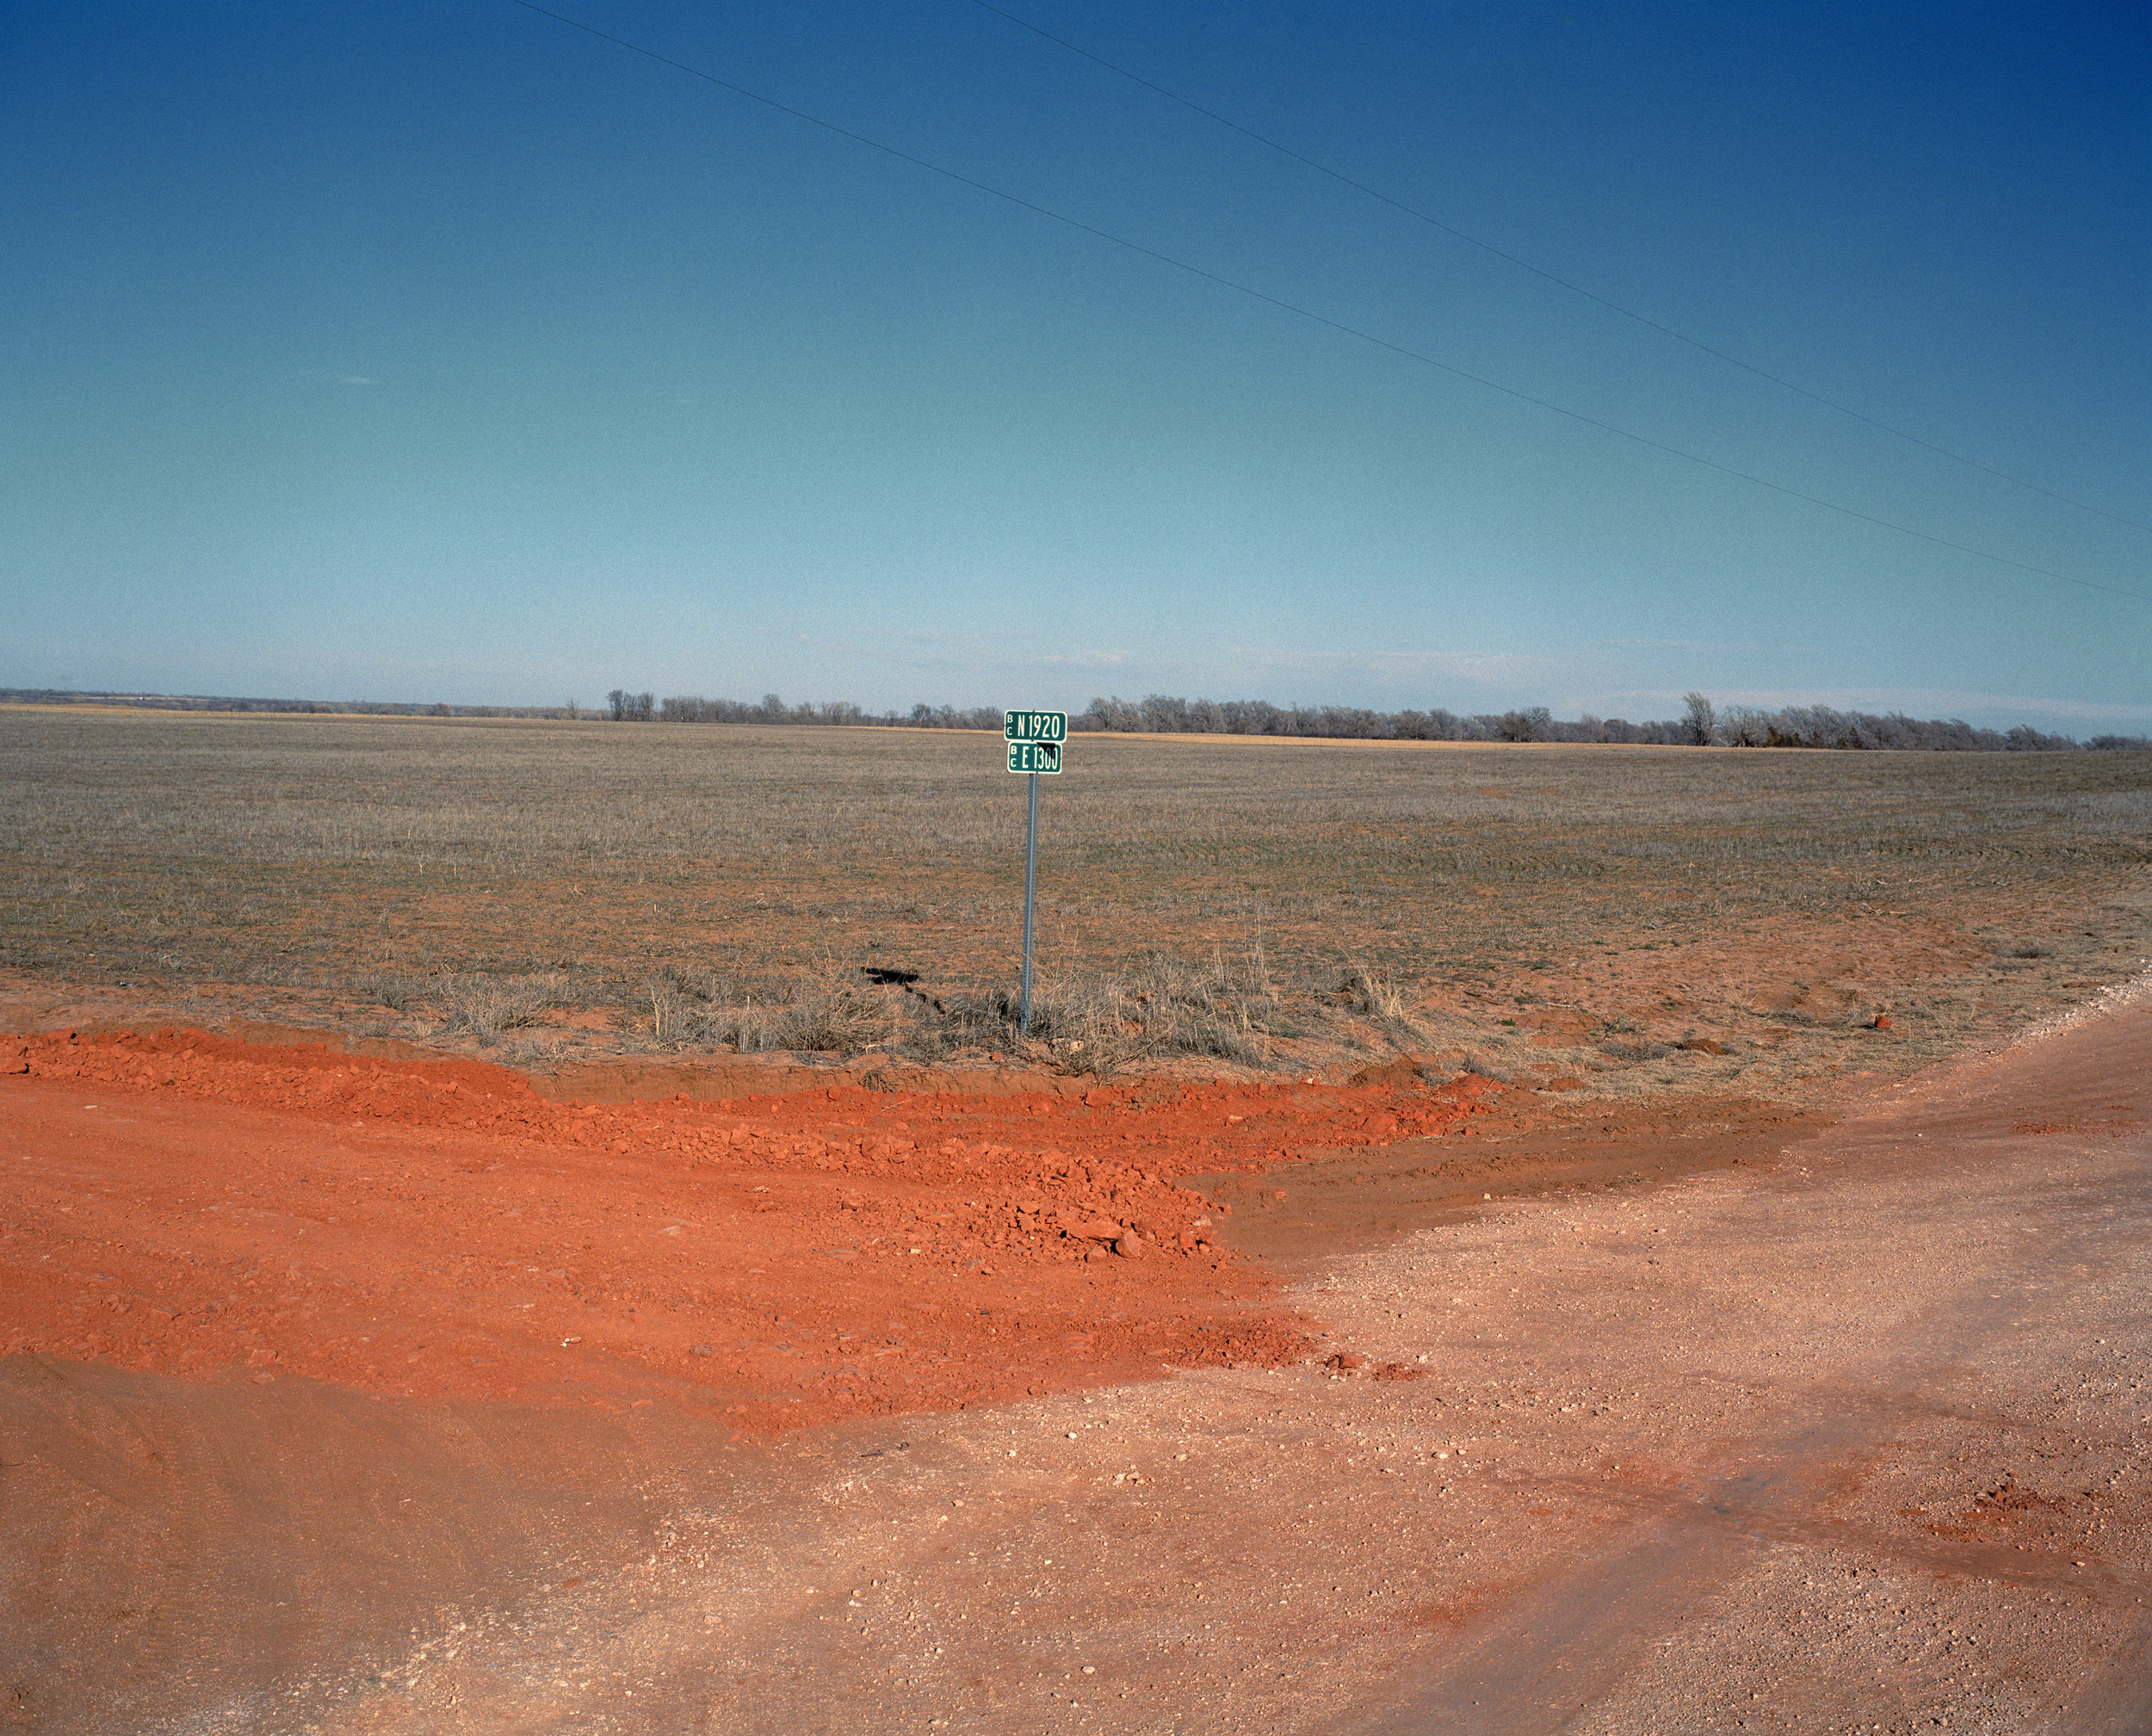 Jon_Ervin_Red Dirt Road.jpg